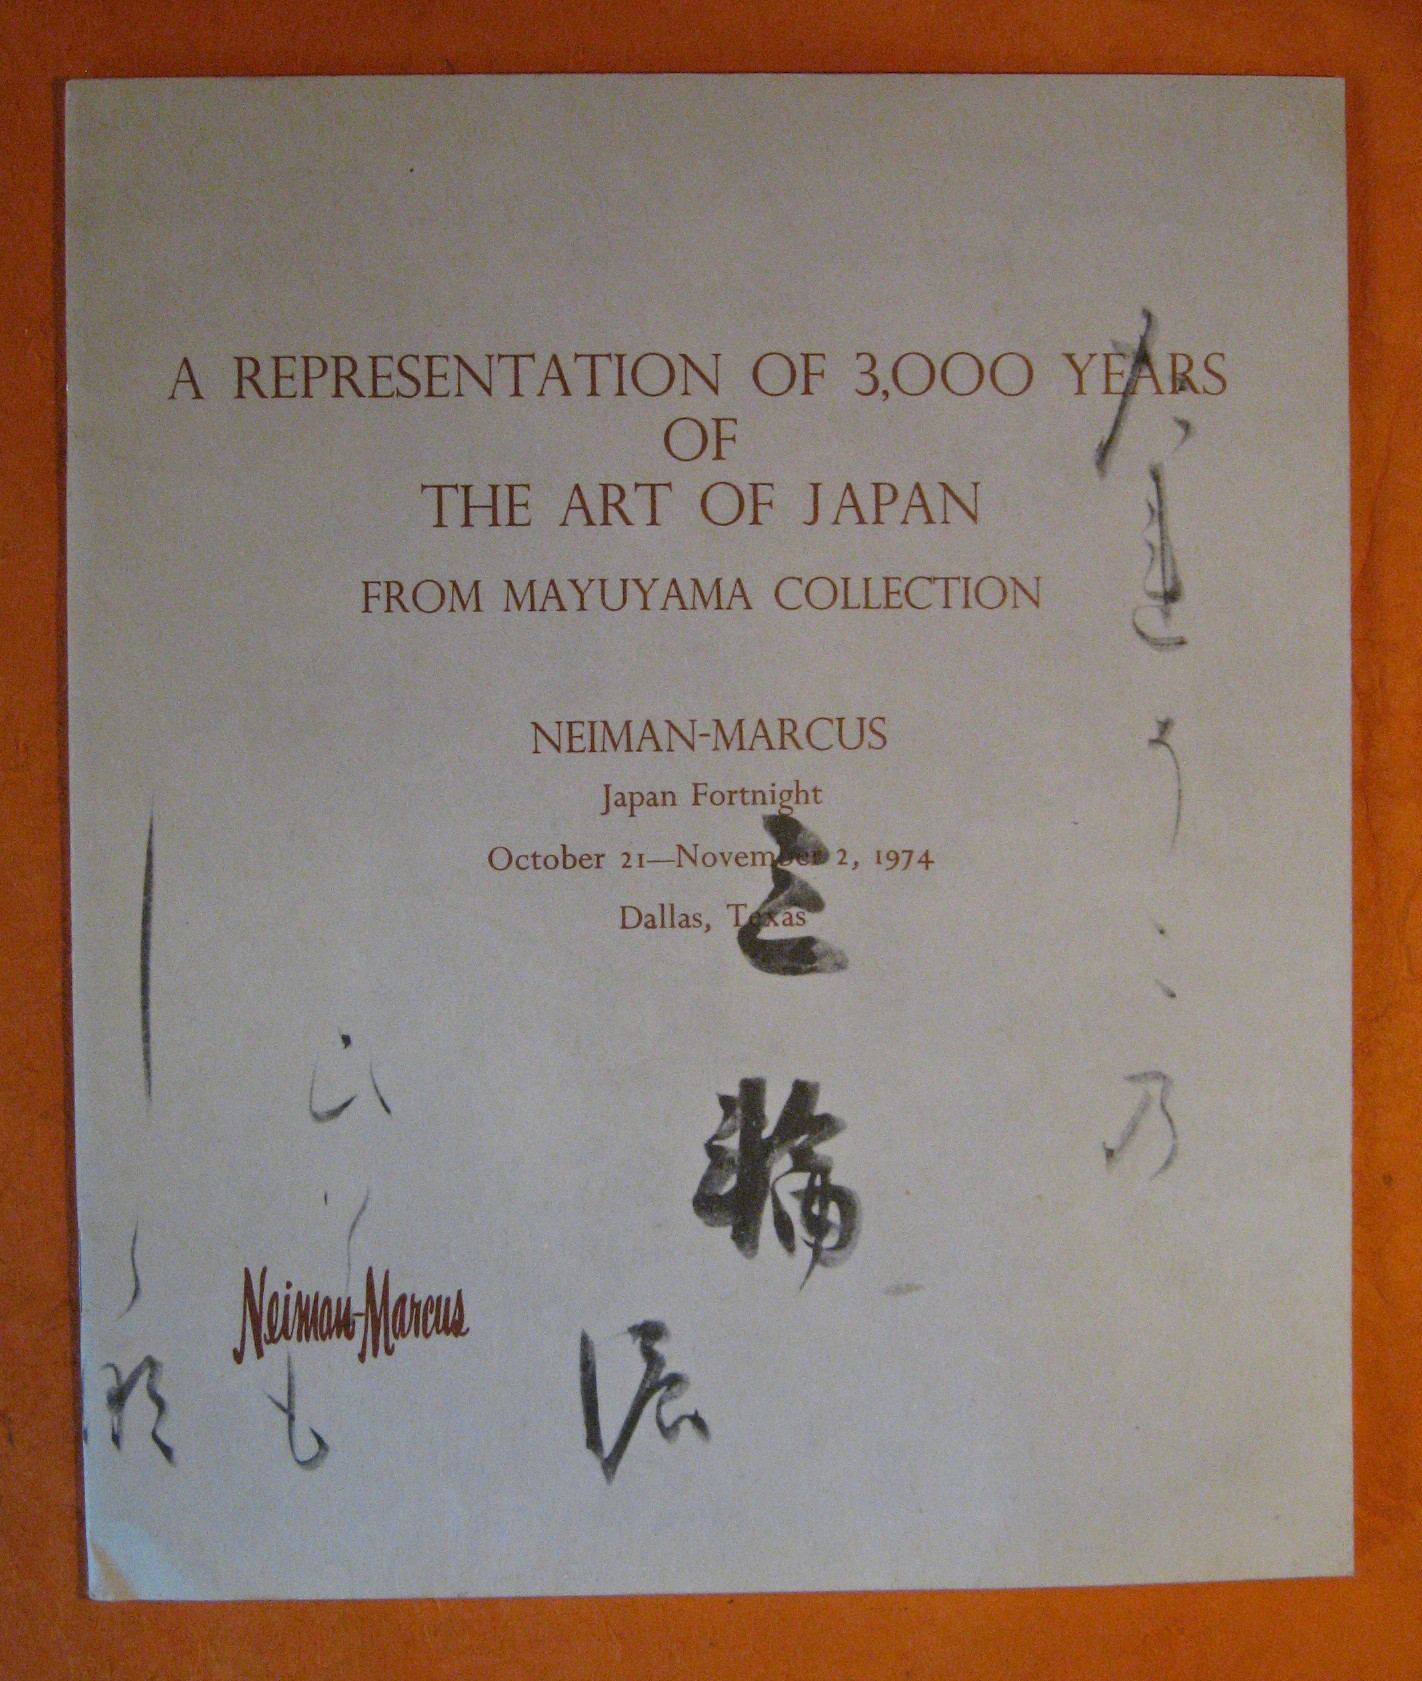 A Representation of 3,000 Years of the Art of Japan from Mayuyama Collection